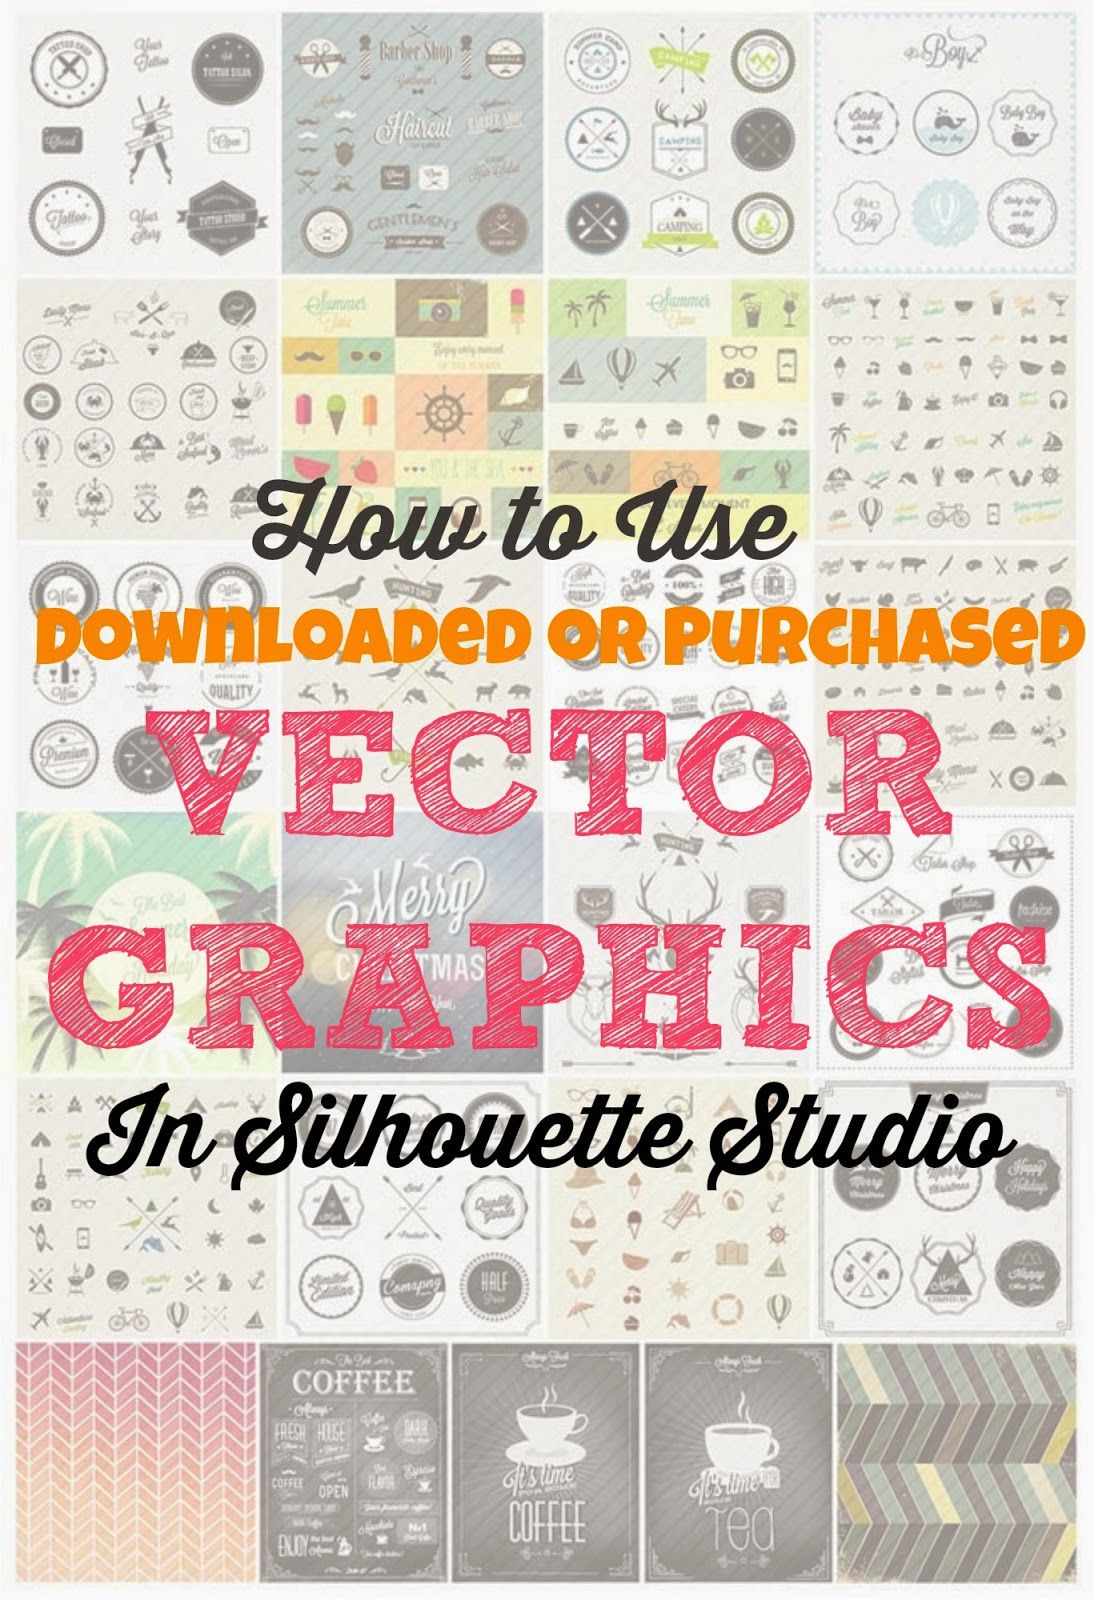 How to use downloaded vector graphics in Silhouette Studio